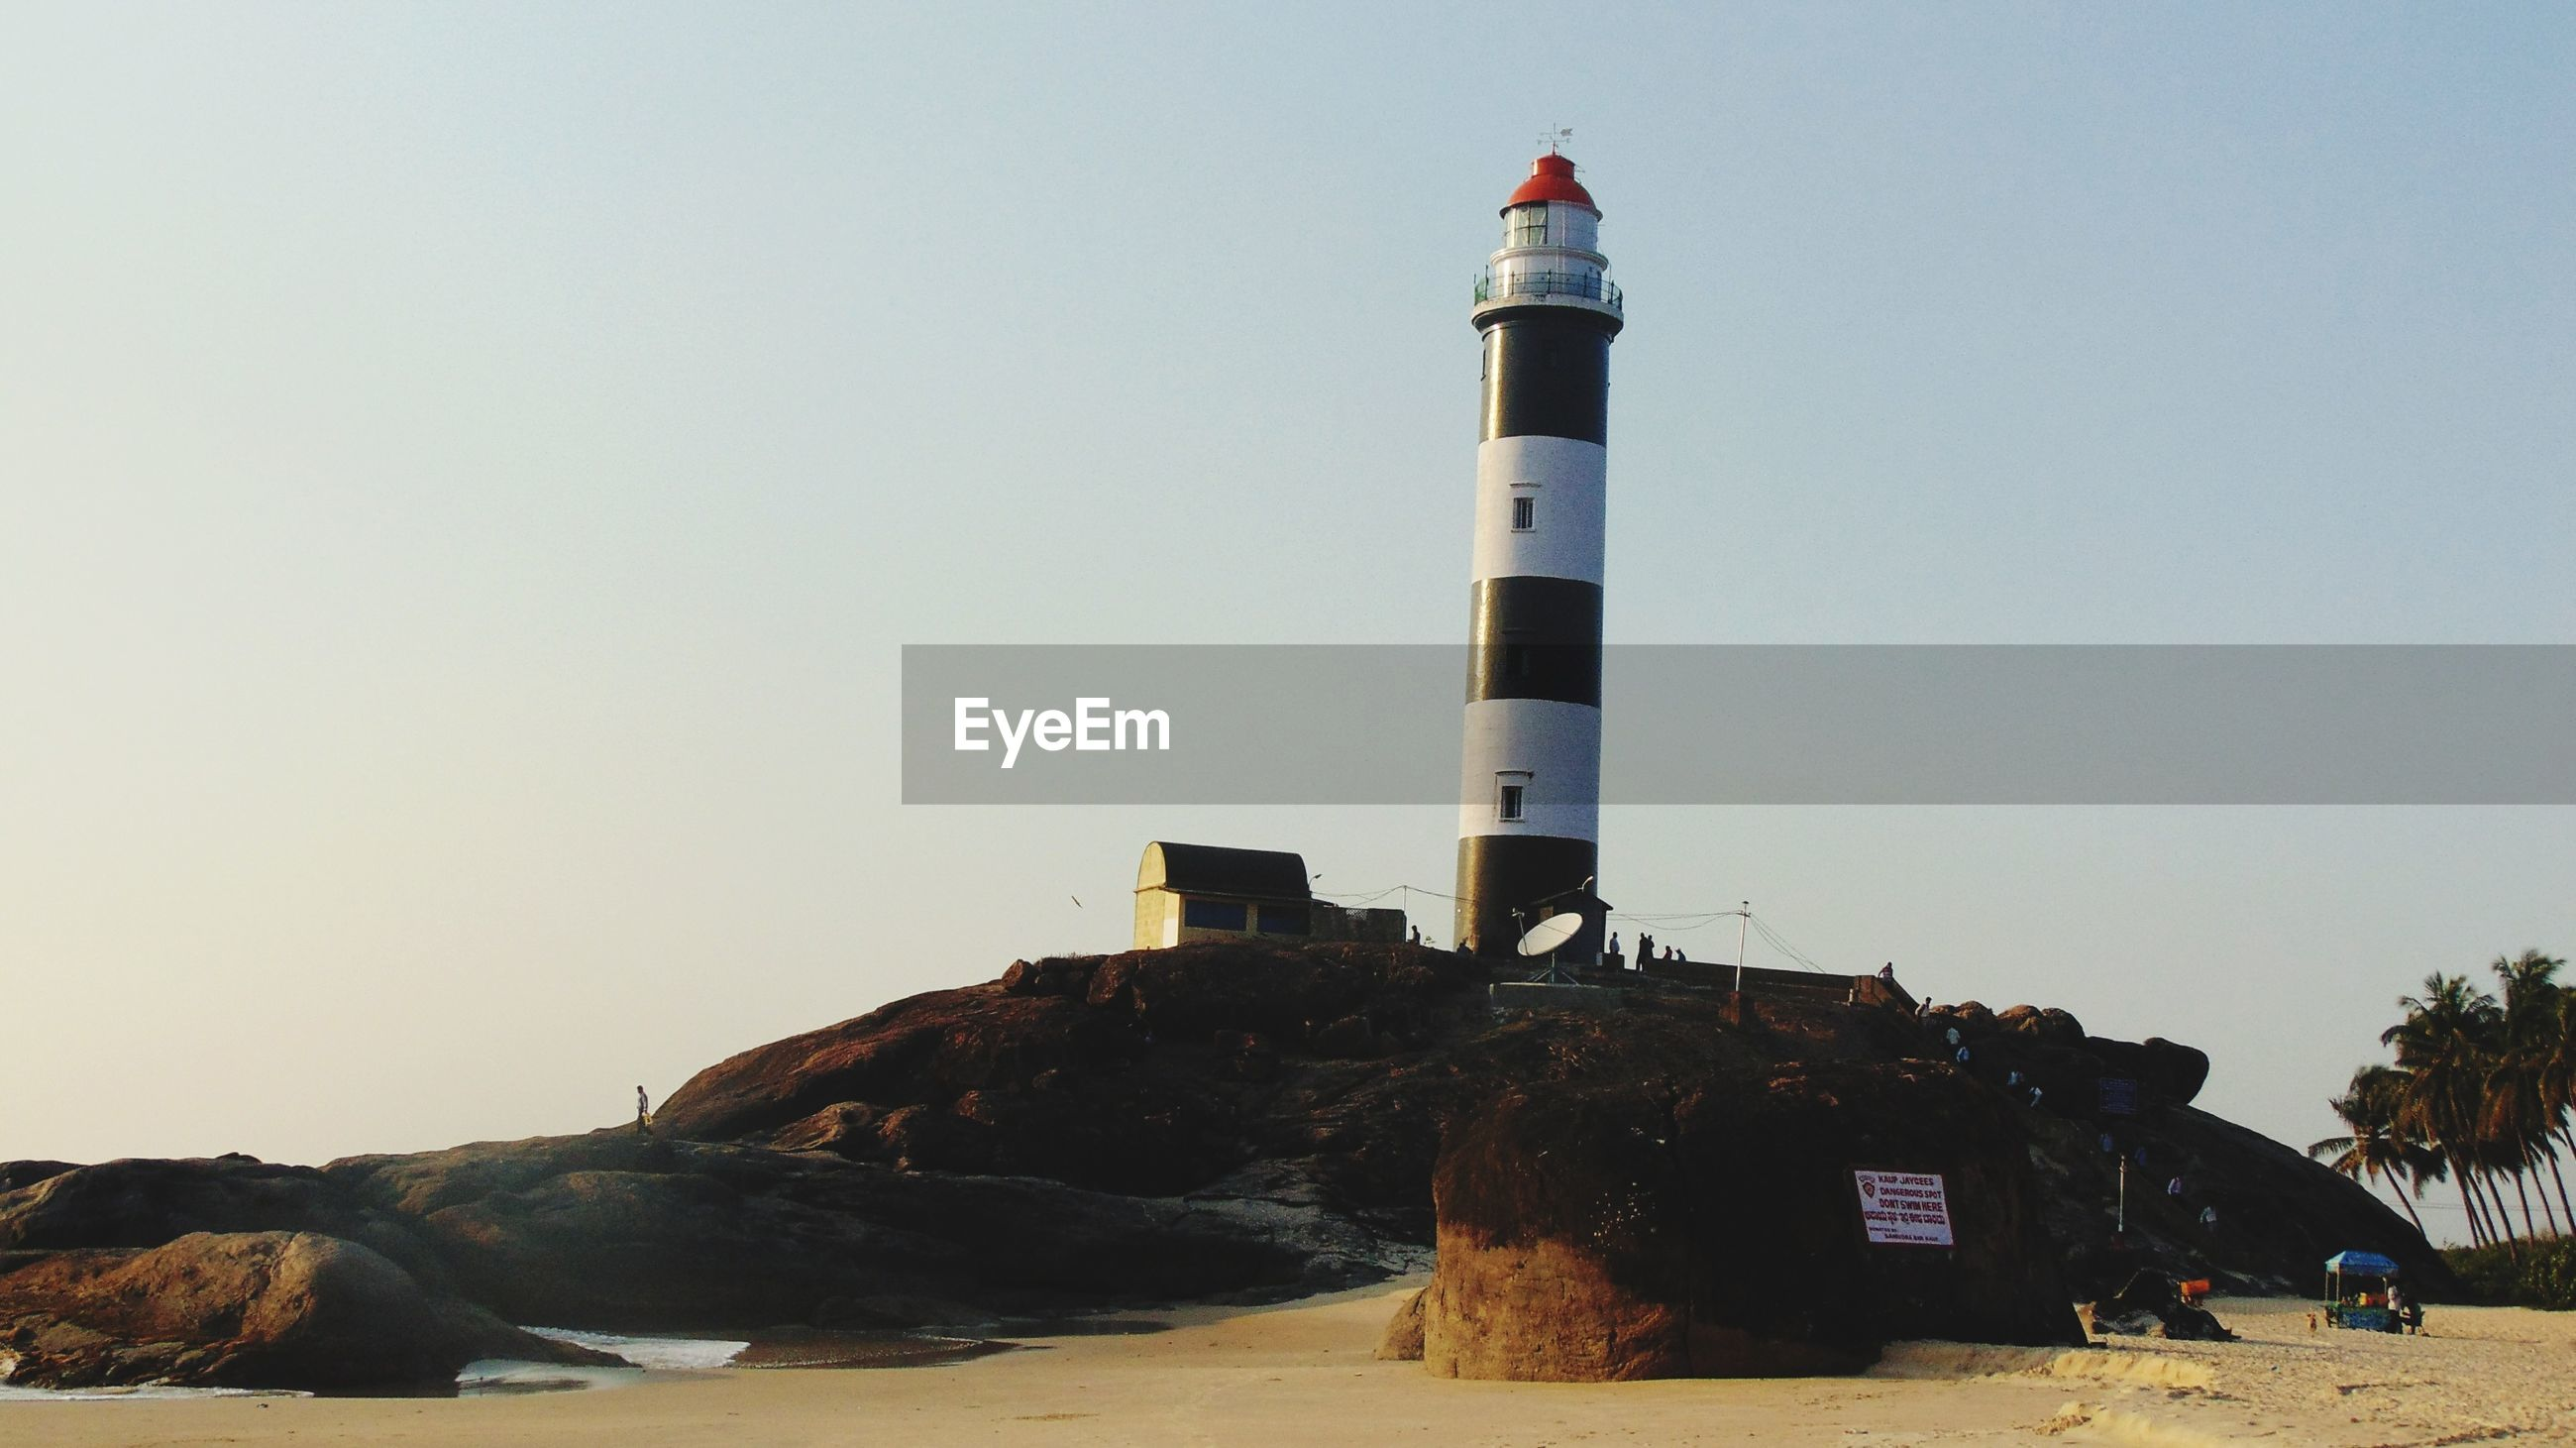 Lighthouse on rock formation